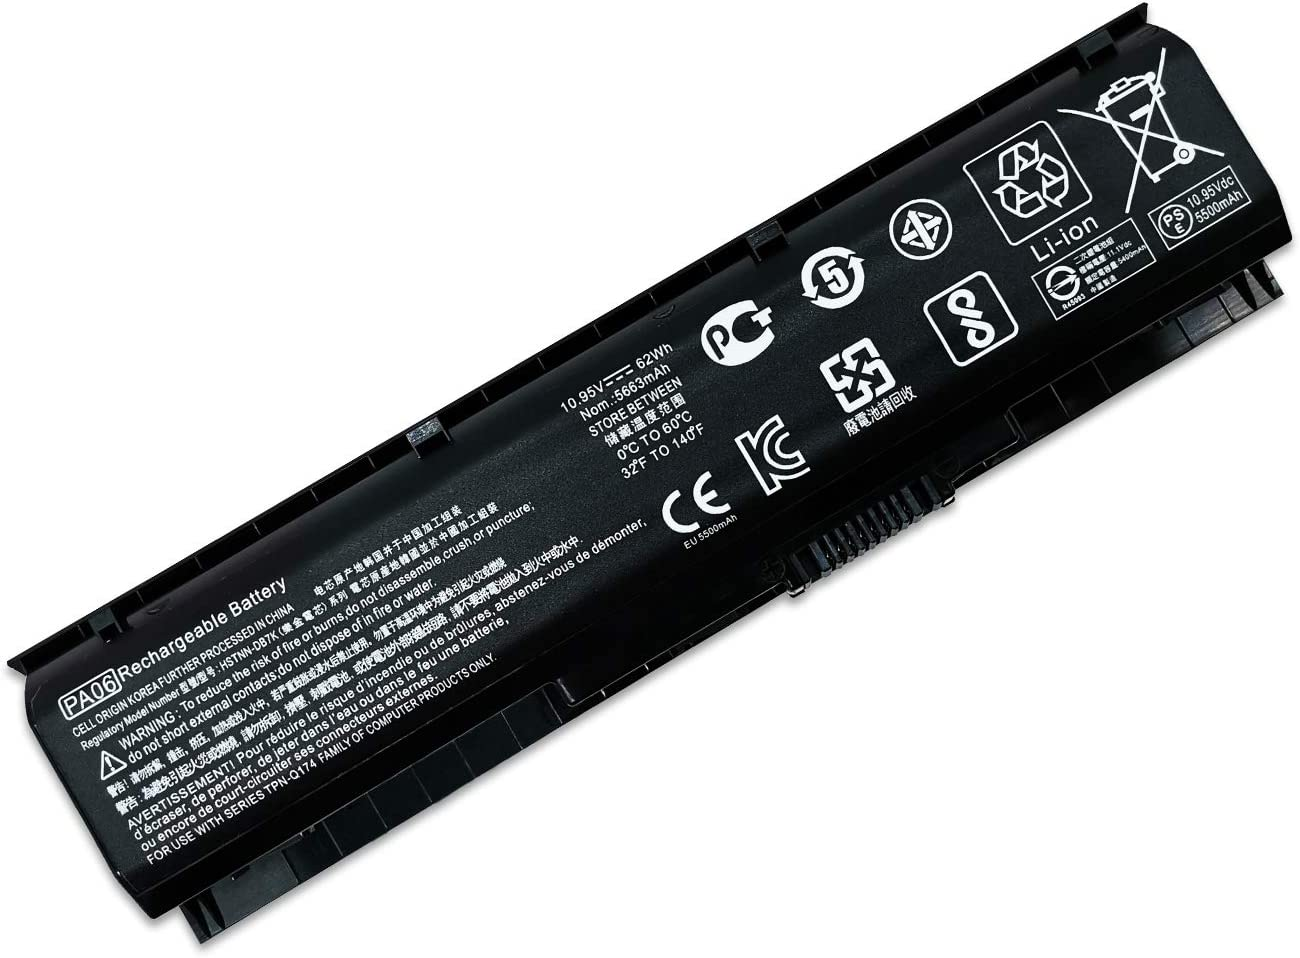 New PA06 HQ-TRE HSTNN-DB7K 849911-850 Laptop Battery Compatible with HP Omen 17 17-w 17-ab200 17t-ab00 Series Notebook 11.1V 62Wh